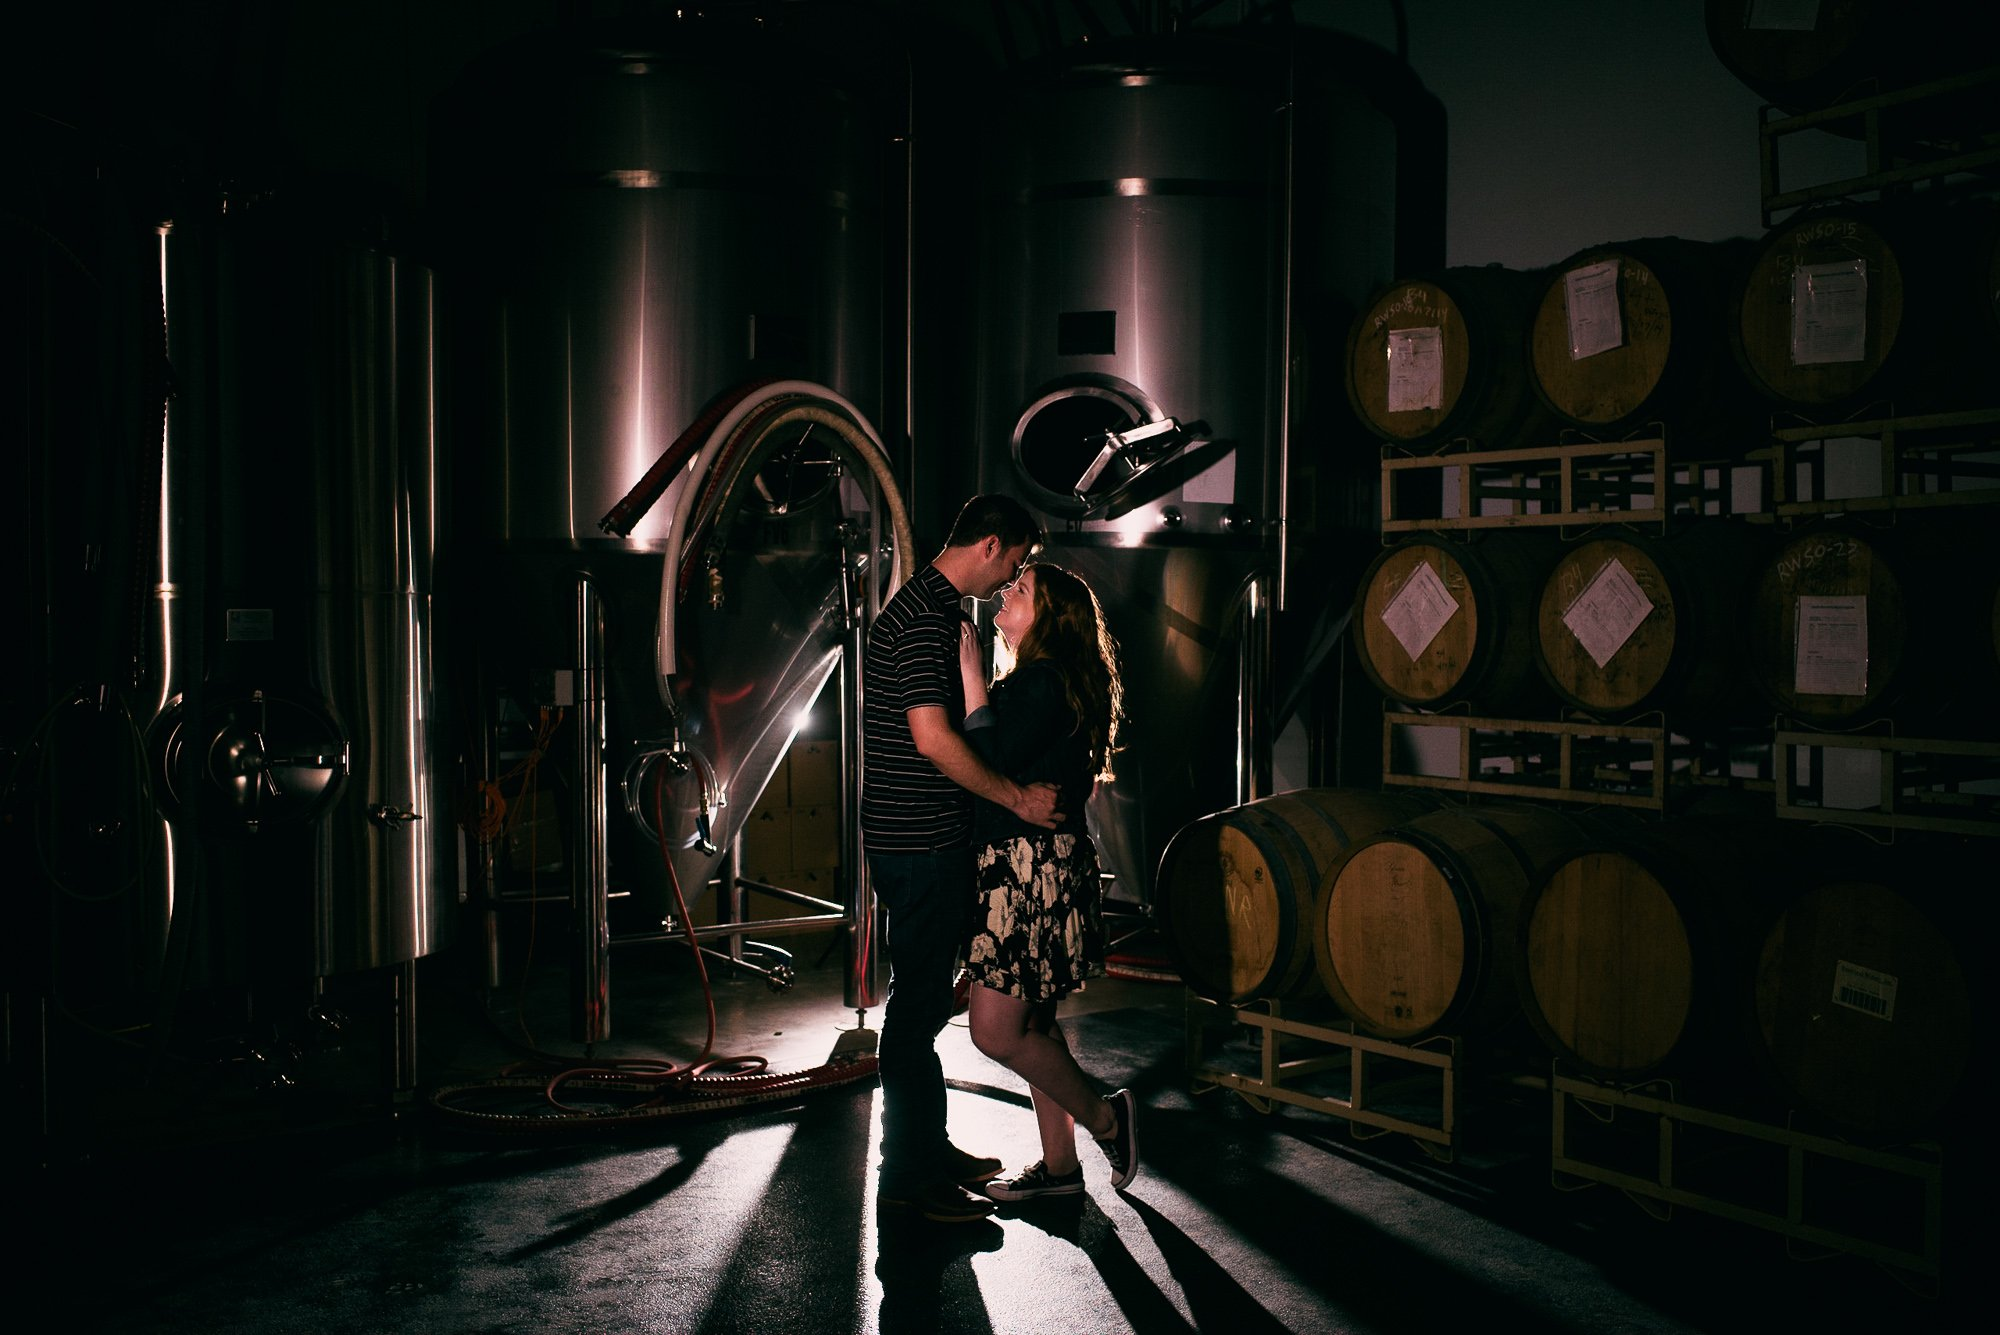 brewery engagement portraits, craft beer engagement photos, austin beerworks photos, creative brewery photography